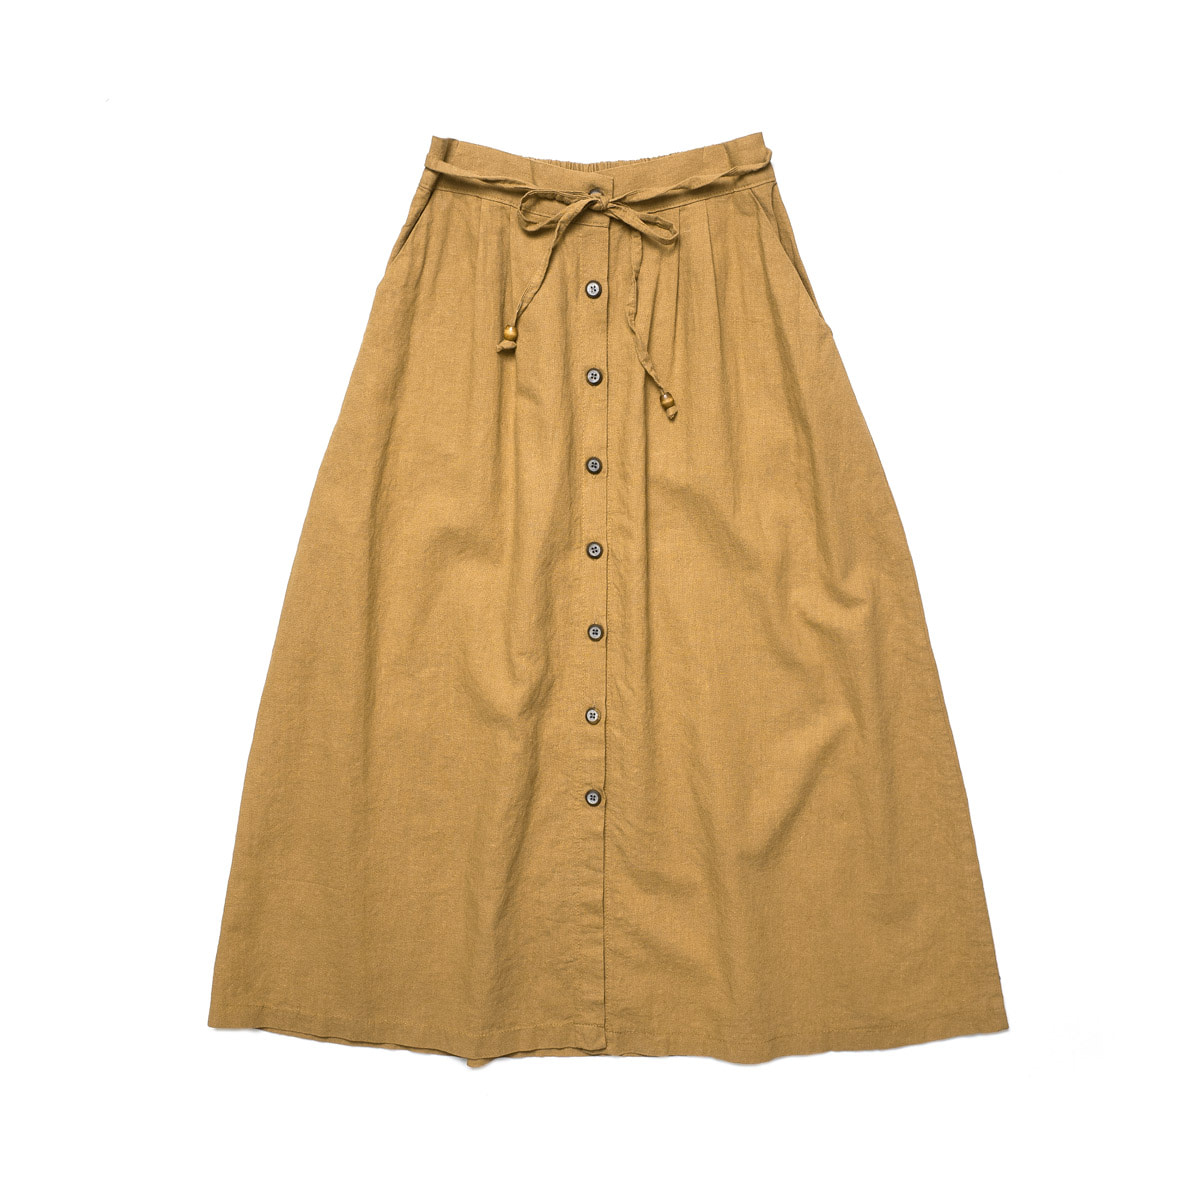 [CHIQUITA] L 2018 LINEN OPEN SKIRT 'BRICK'